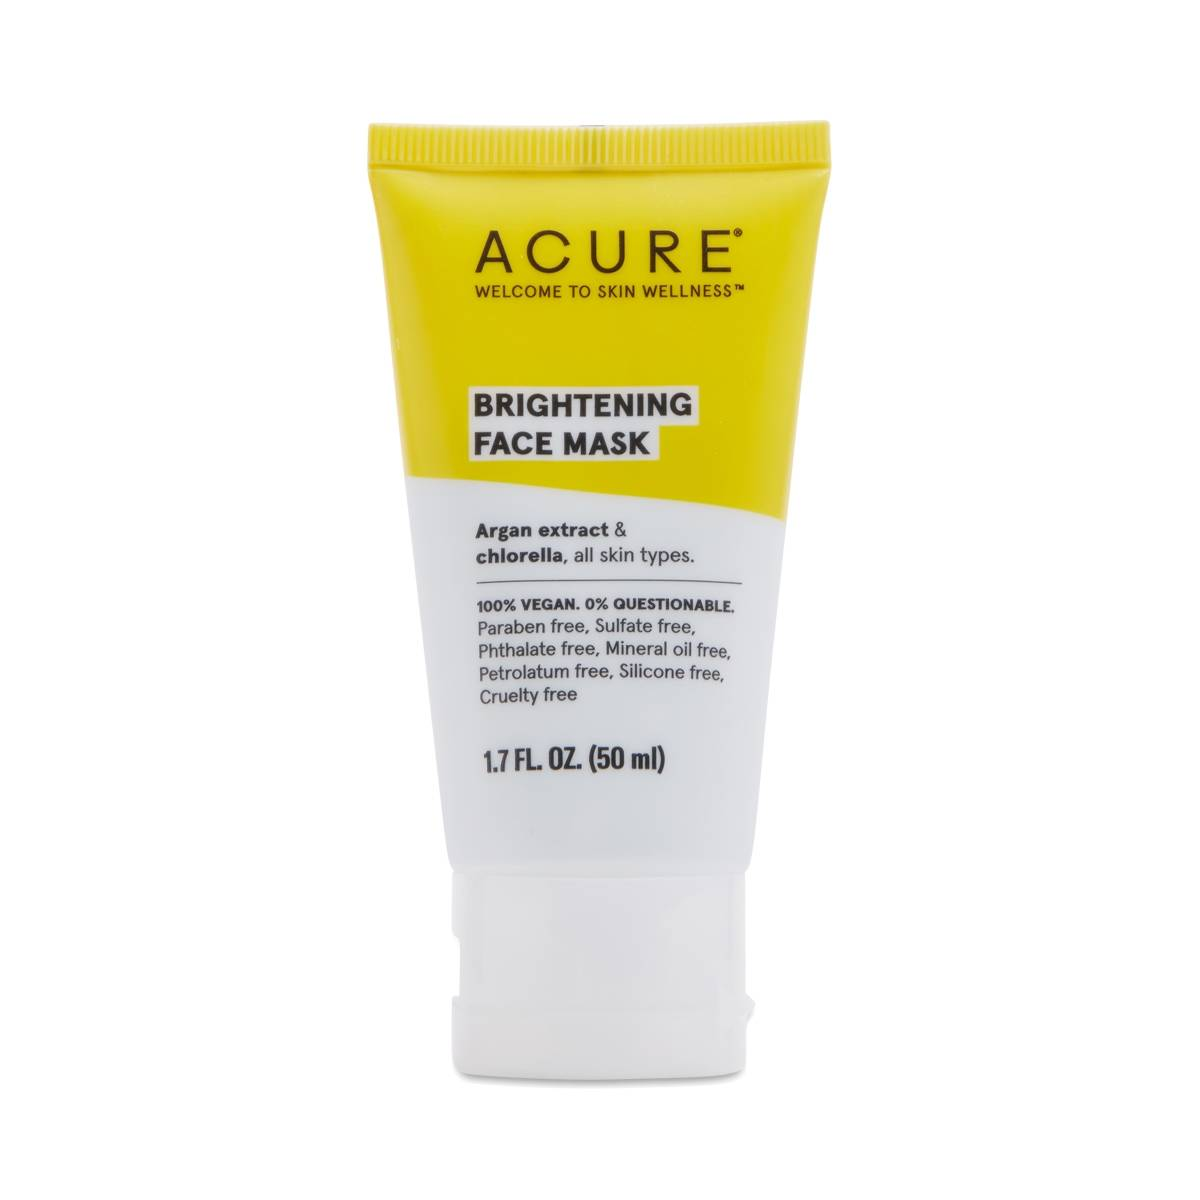 Acure Brightening Face Mask ⋆ Good Taste Guide